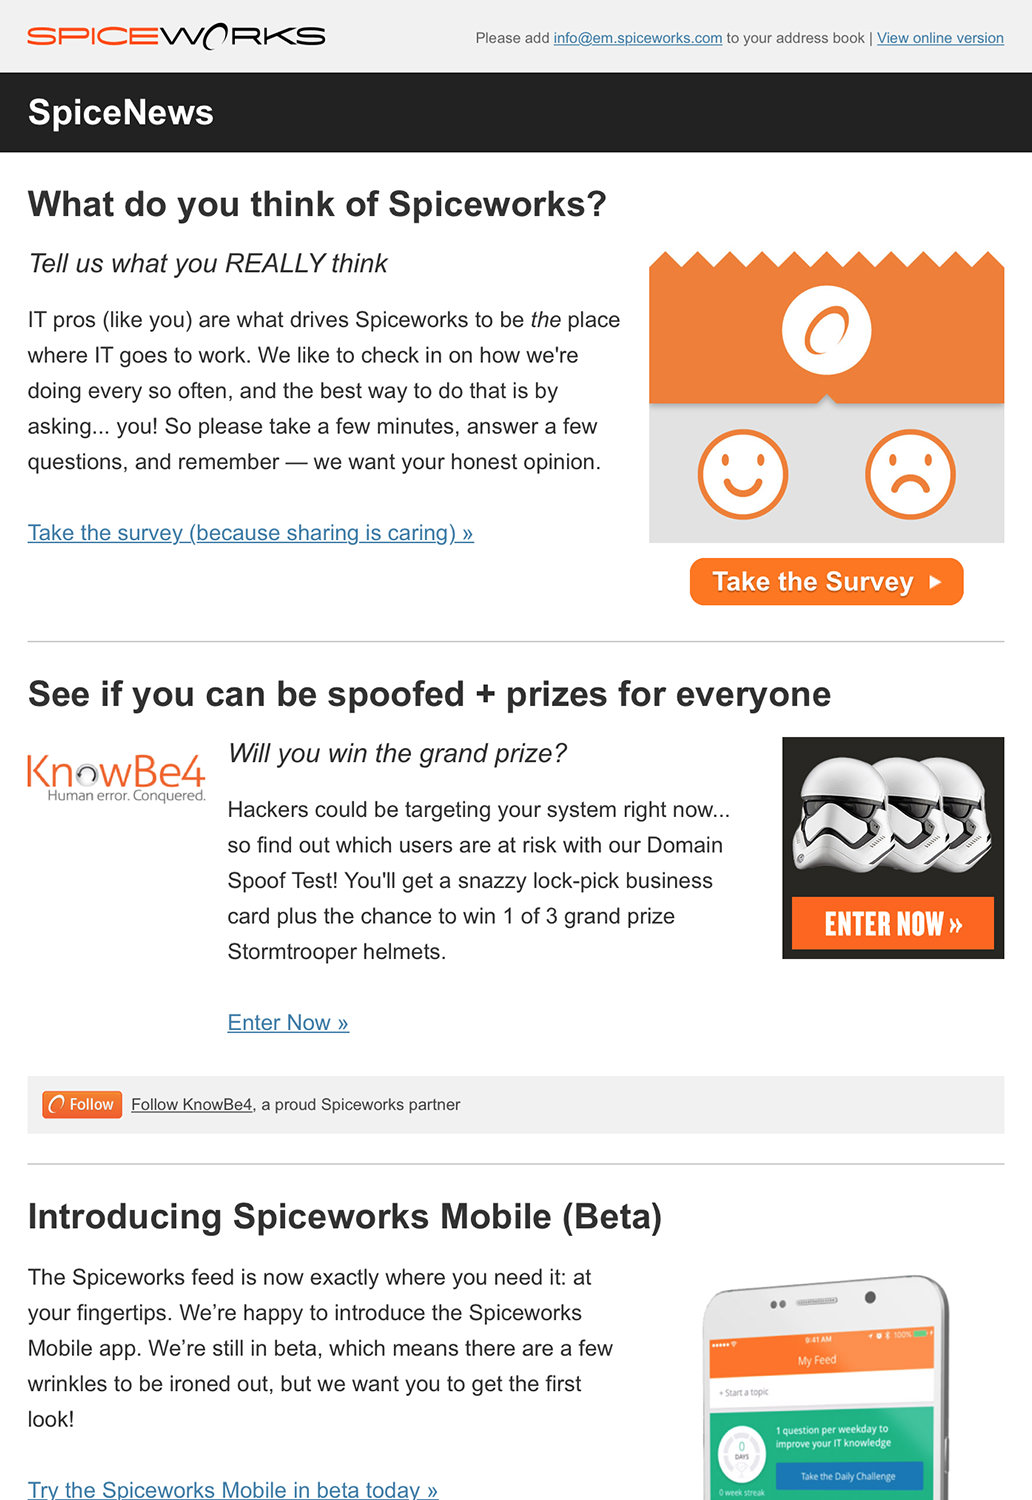 Technology Email Marketing - Spiceworks